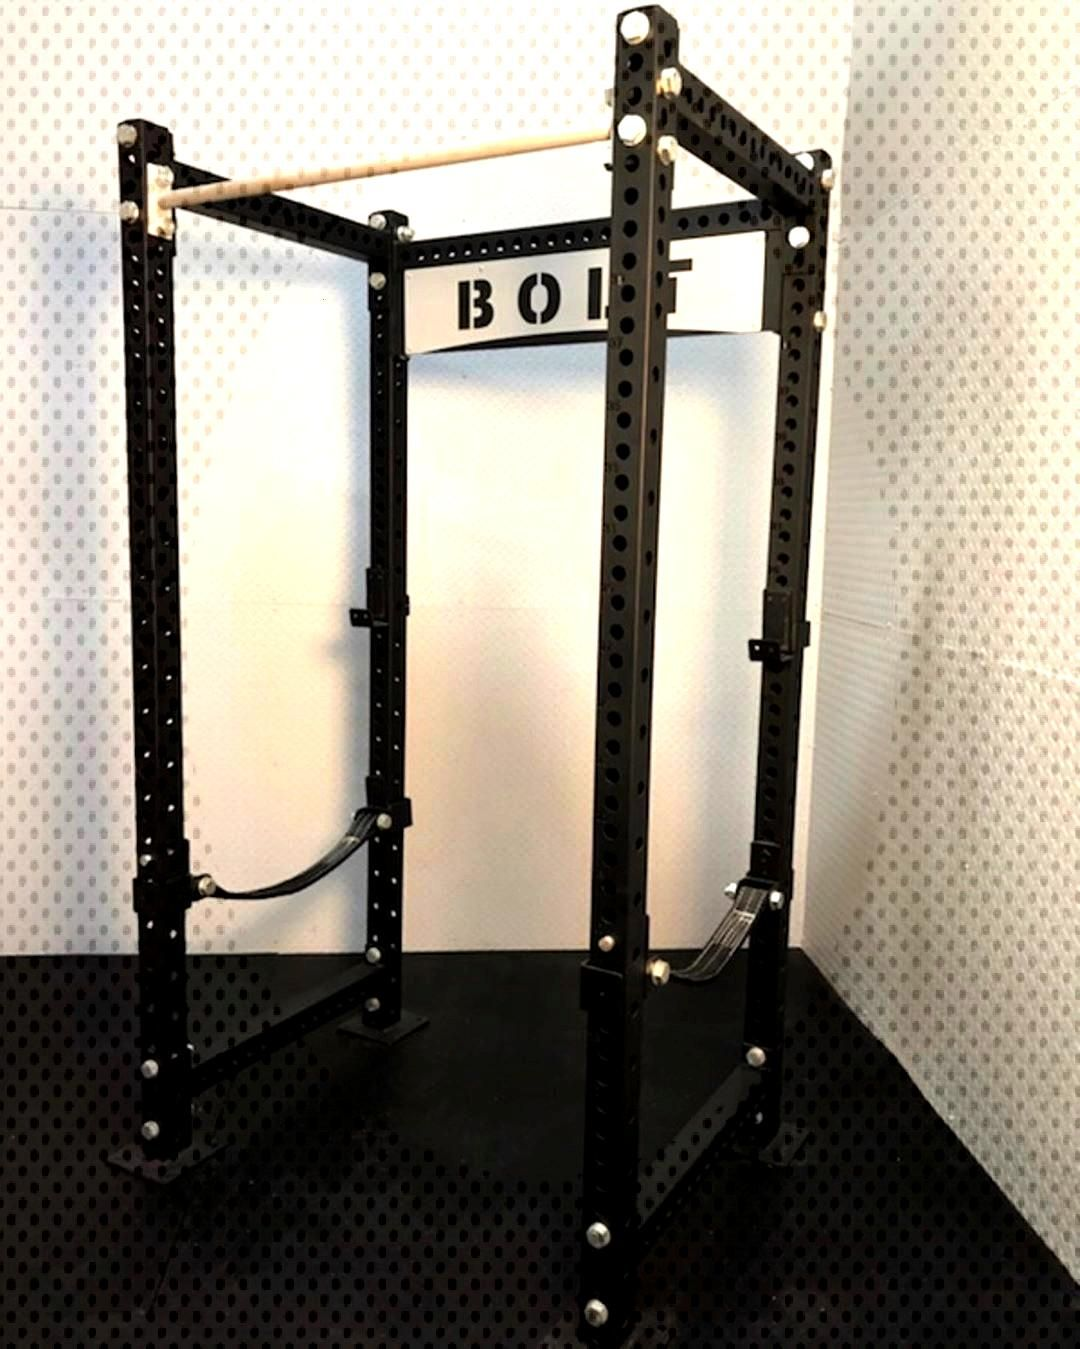 Krypton power racks are back in stock!! located at 6300 alder dr houston tx. Shipping also availabl